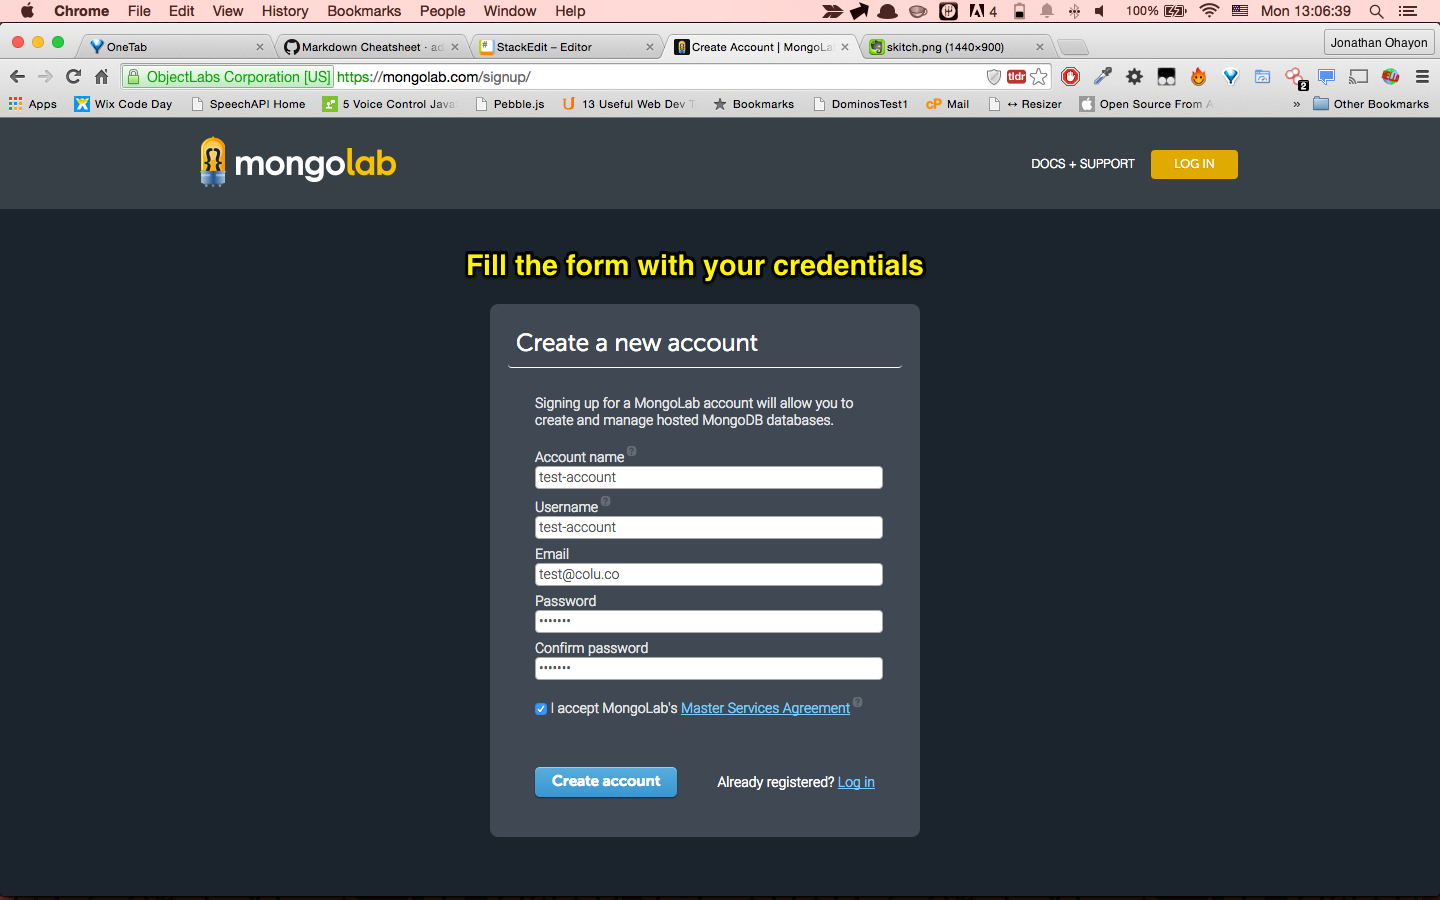 Mongolab signup form